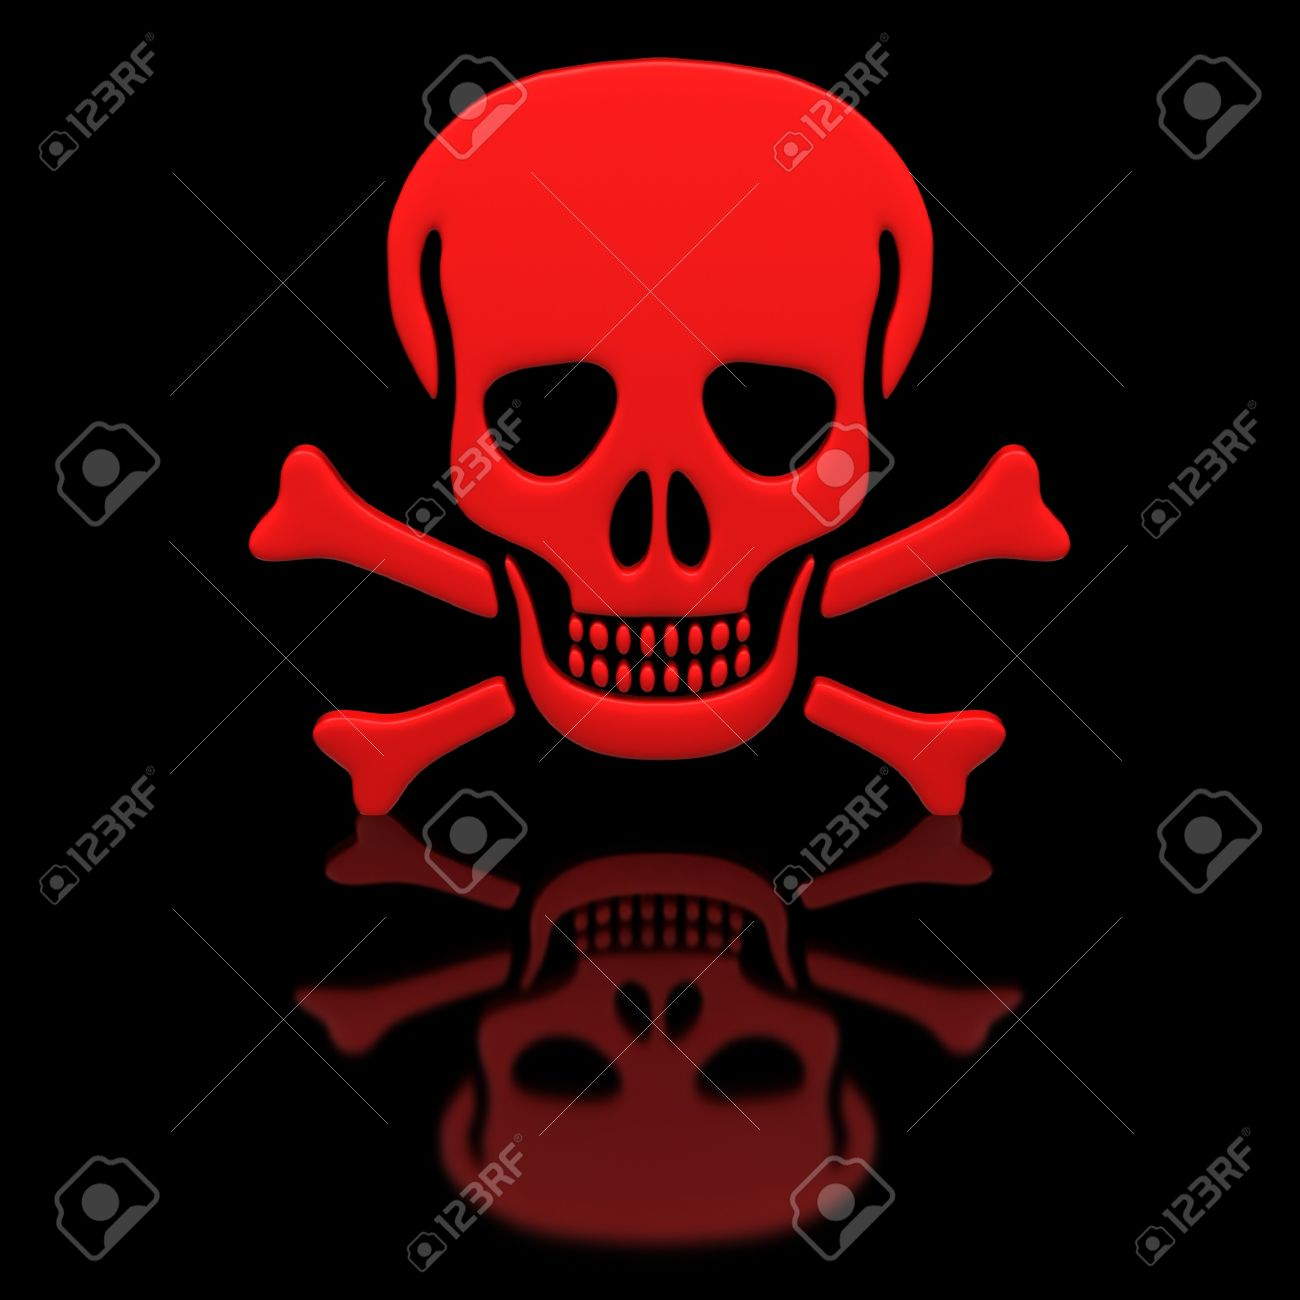 Red skull and crossbones on a black glossy surface